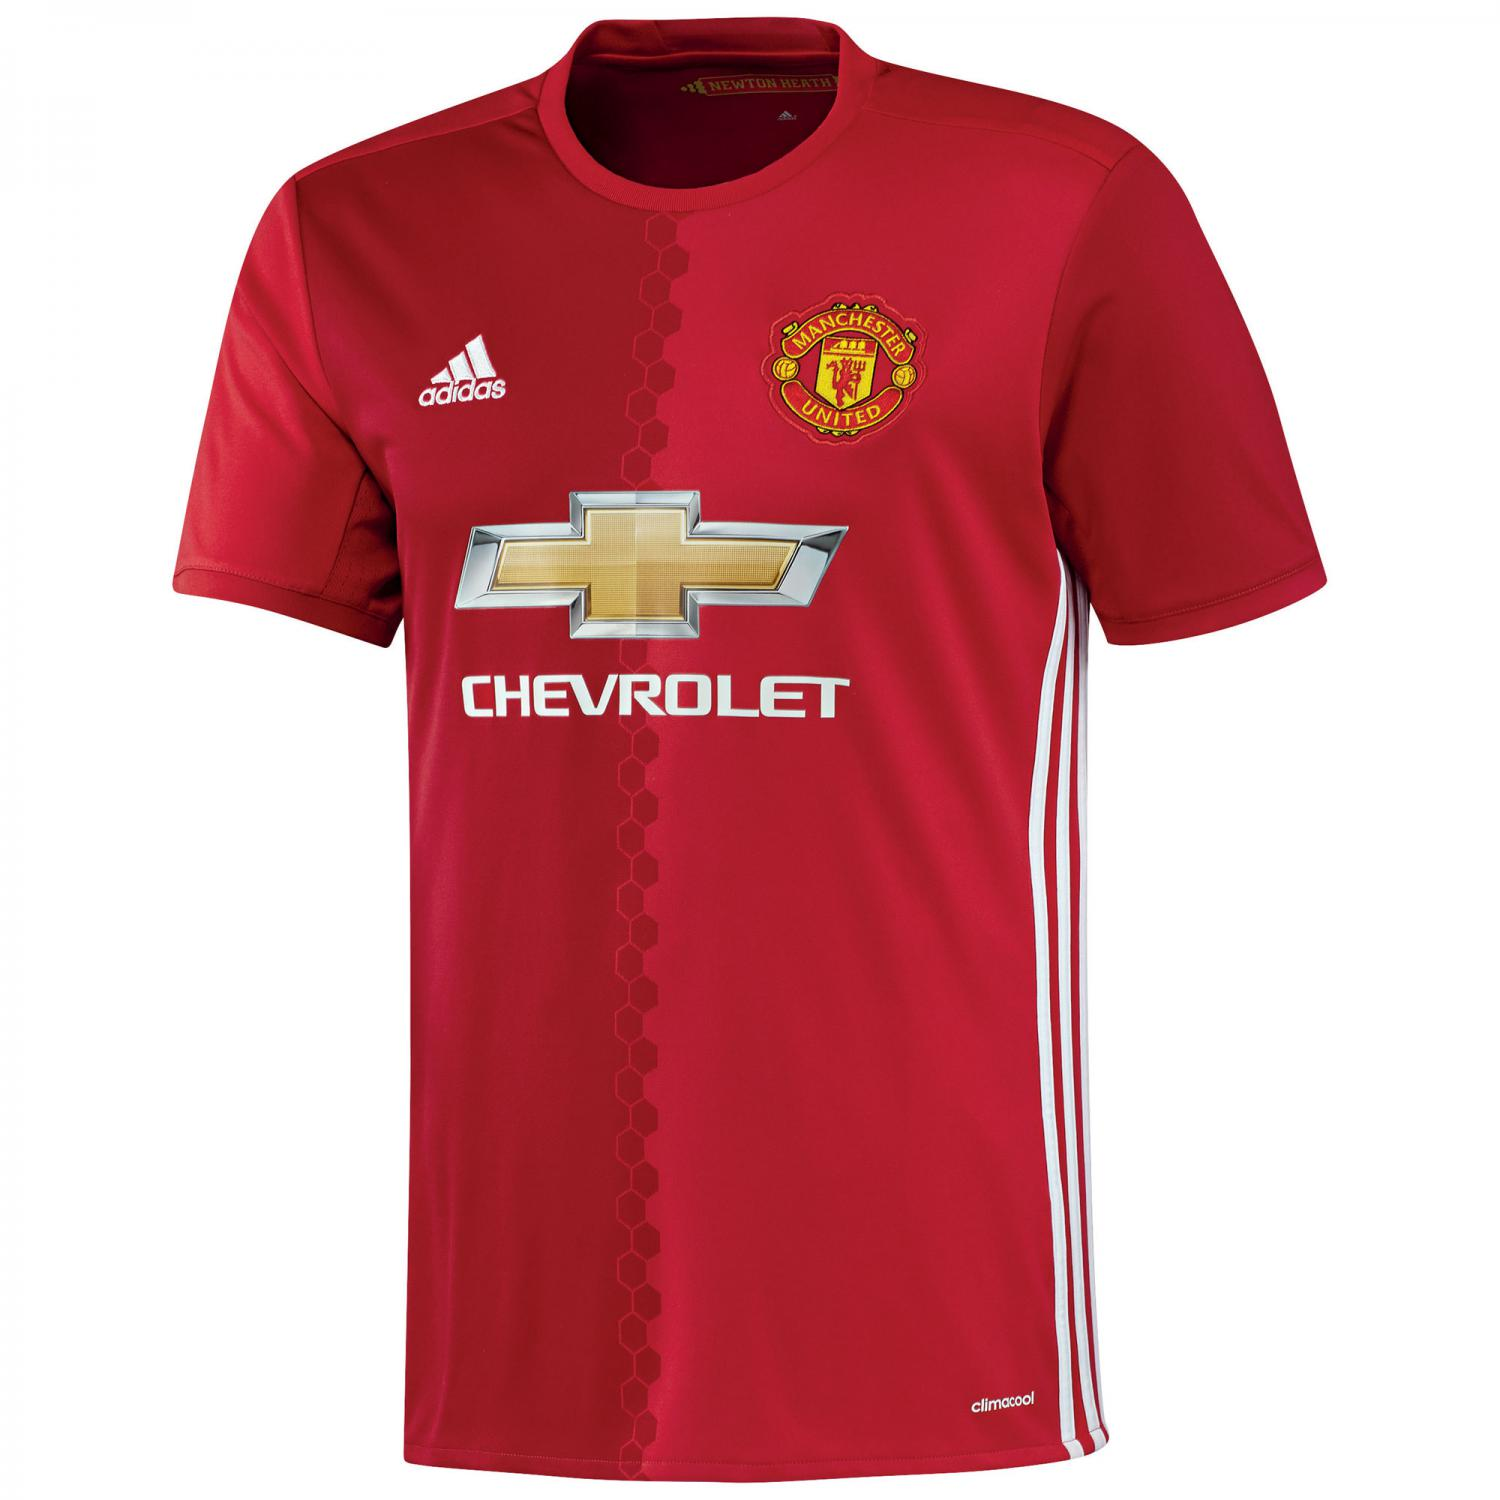 manchester united trikot auf rechnung bezahlen. Black Bedroom Furniture Sets. Home Design Ideas